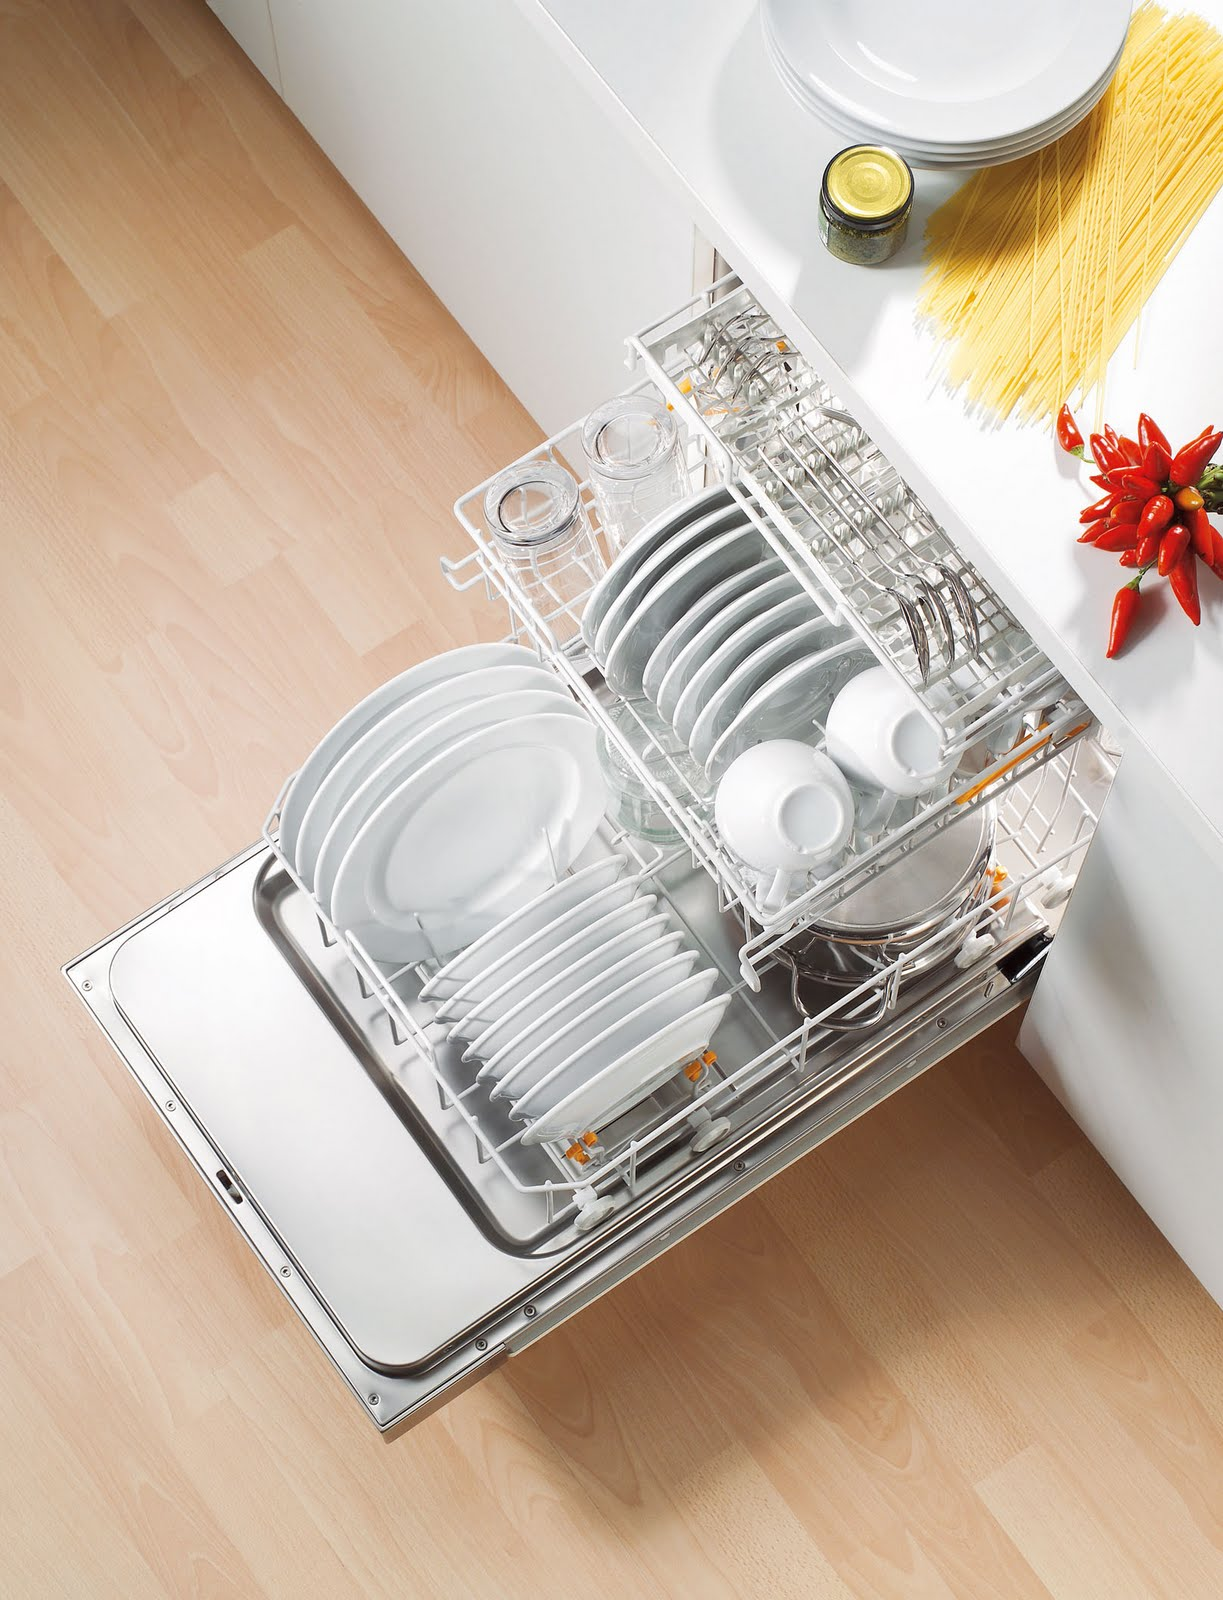 Image Result For Apartment Dishwasher